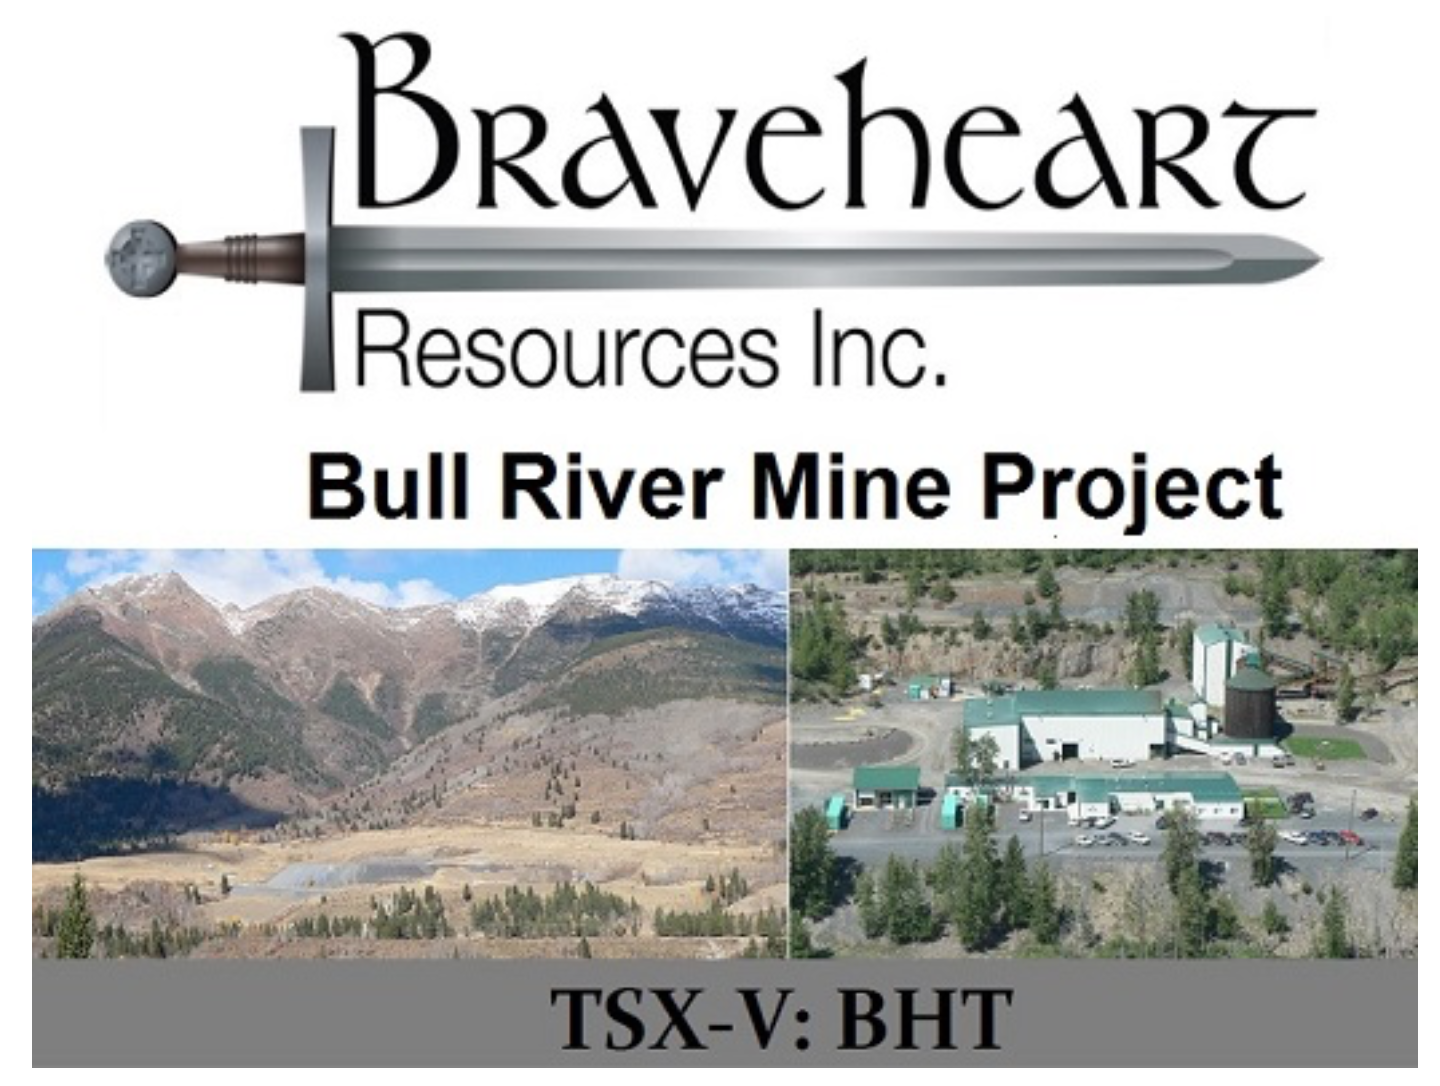 BHT.V: Update on Progress at Bull River Mine of Braveheart Resources